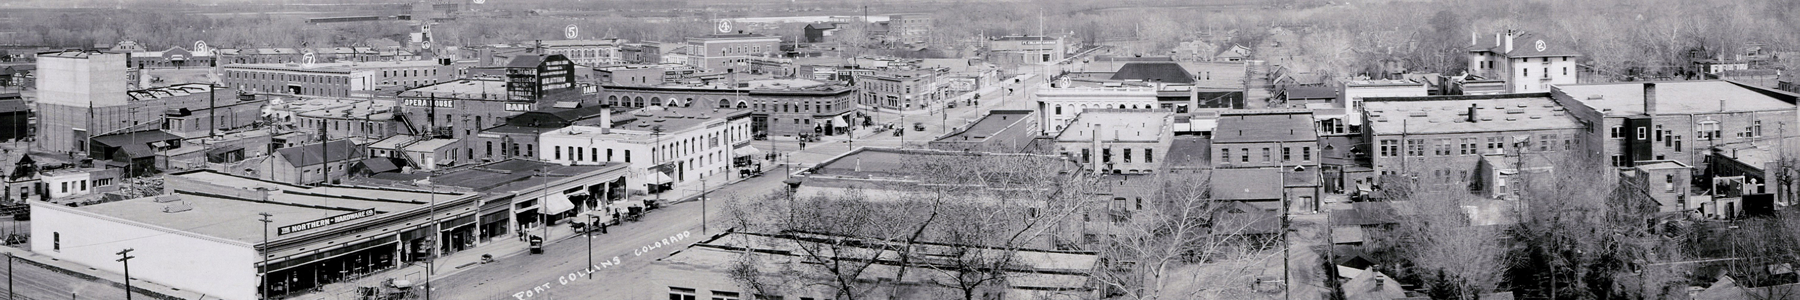 Panorama of Fort Collins, circa 1912, taken from the roof of the old Larimer County Courthouse